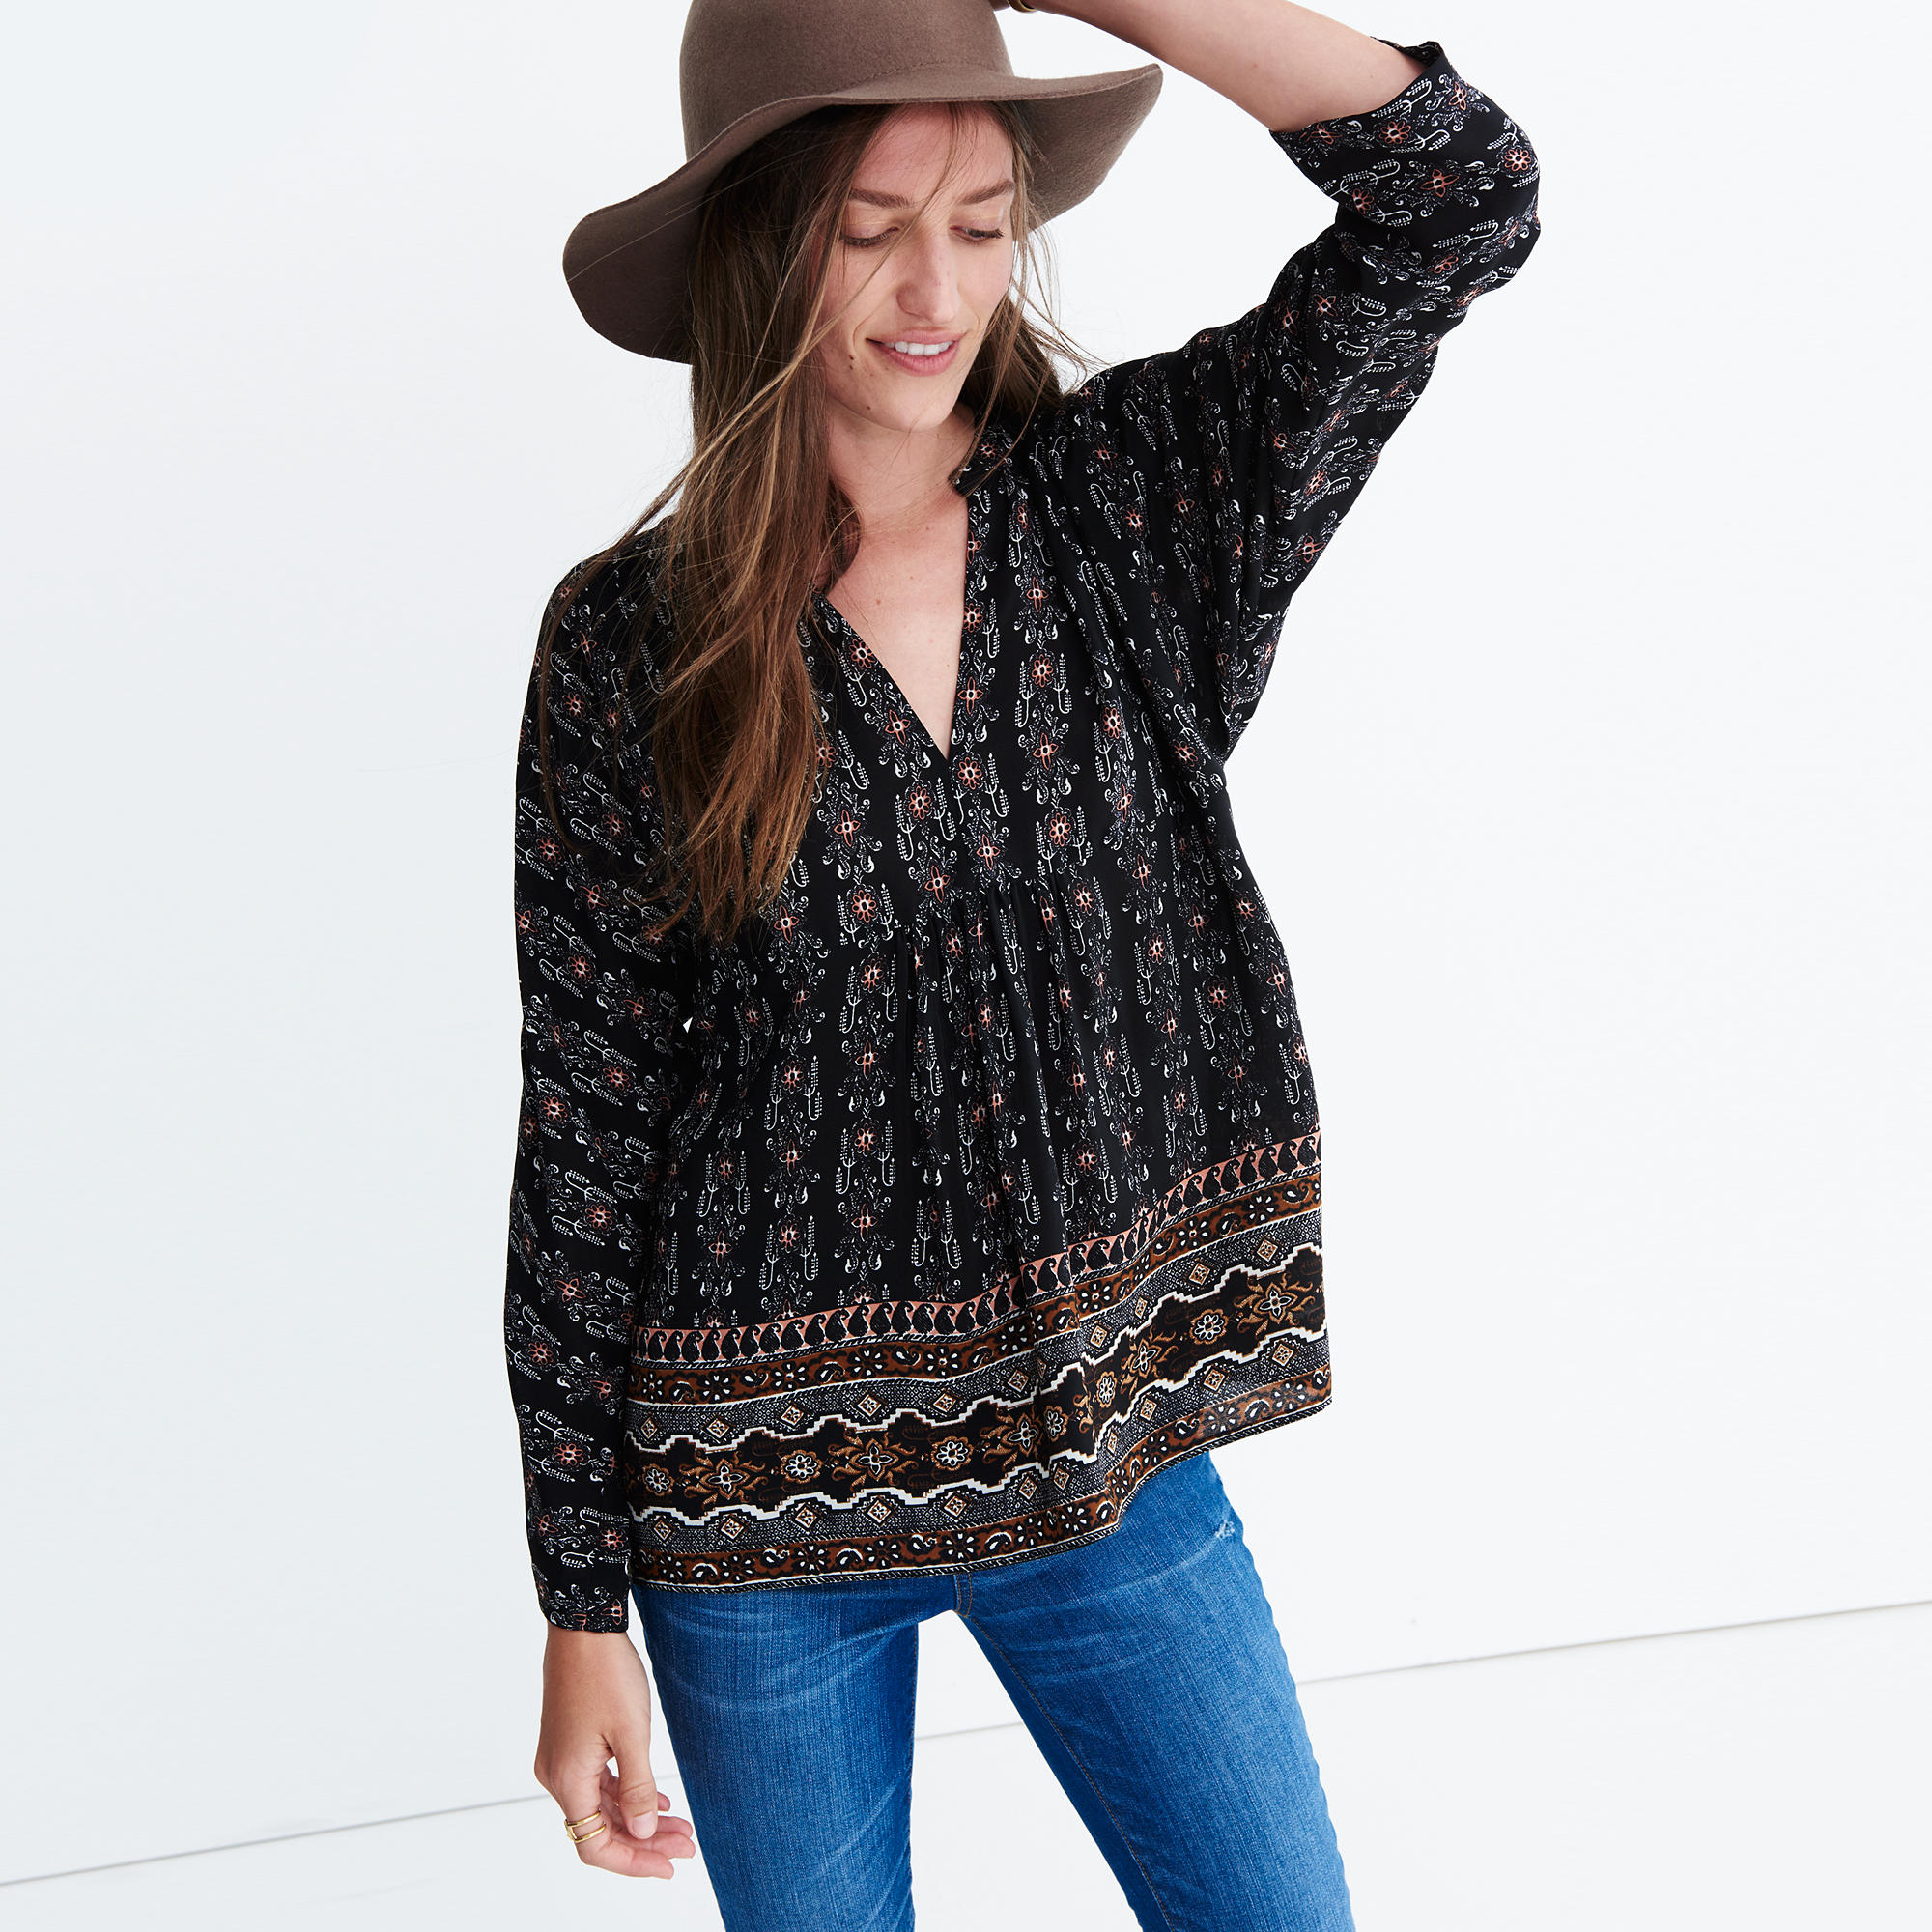 Picture from Madewell.com - Click for link!